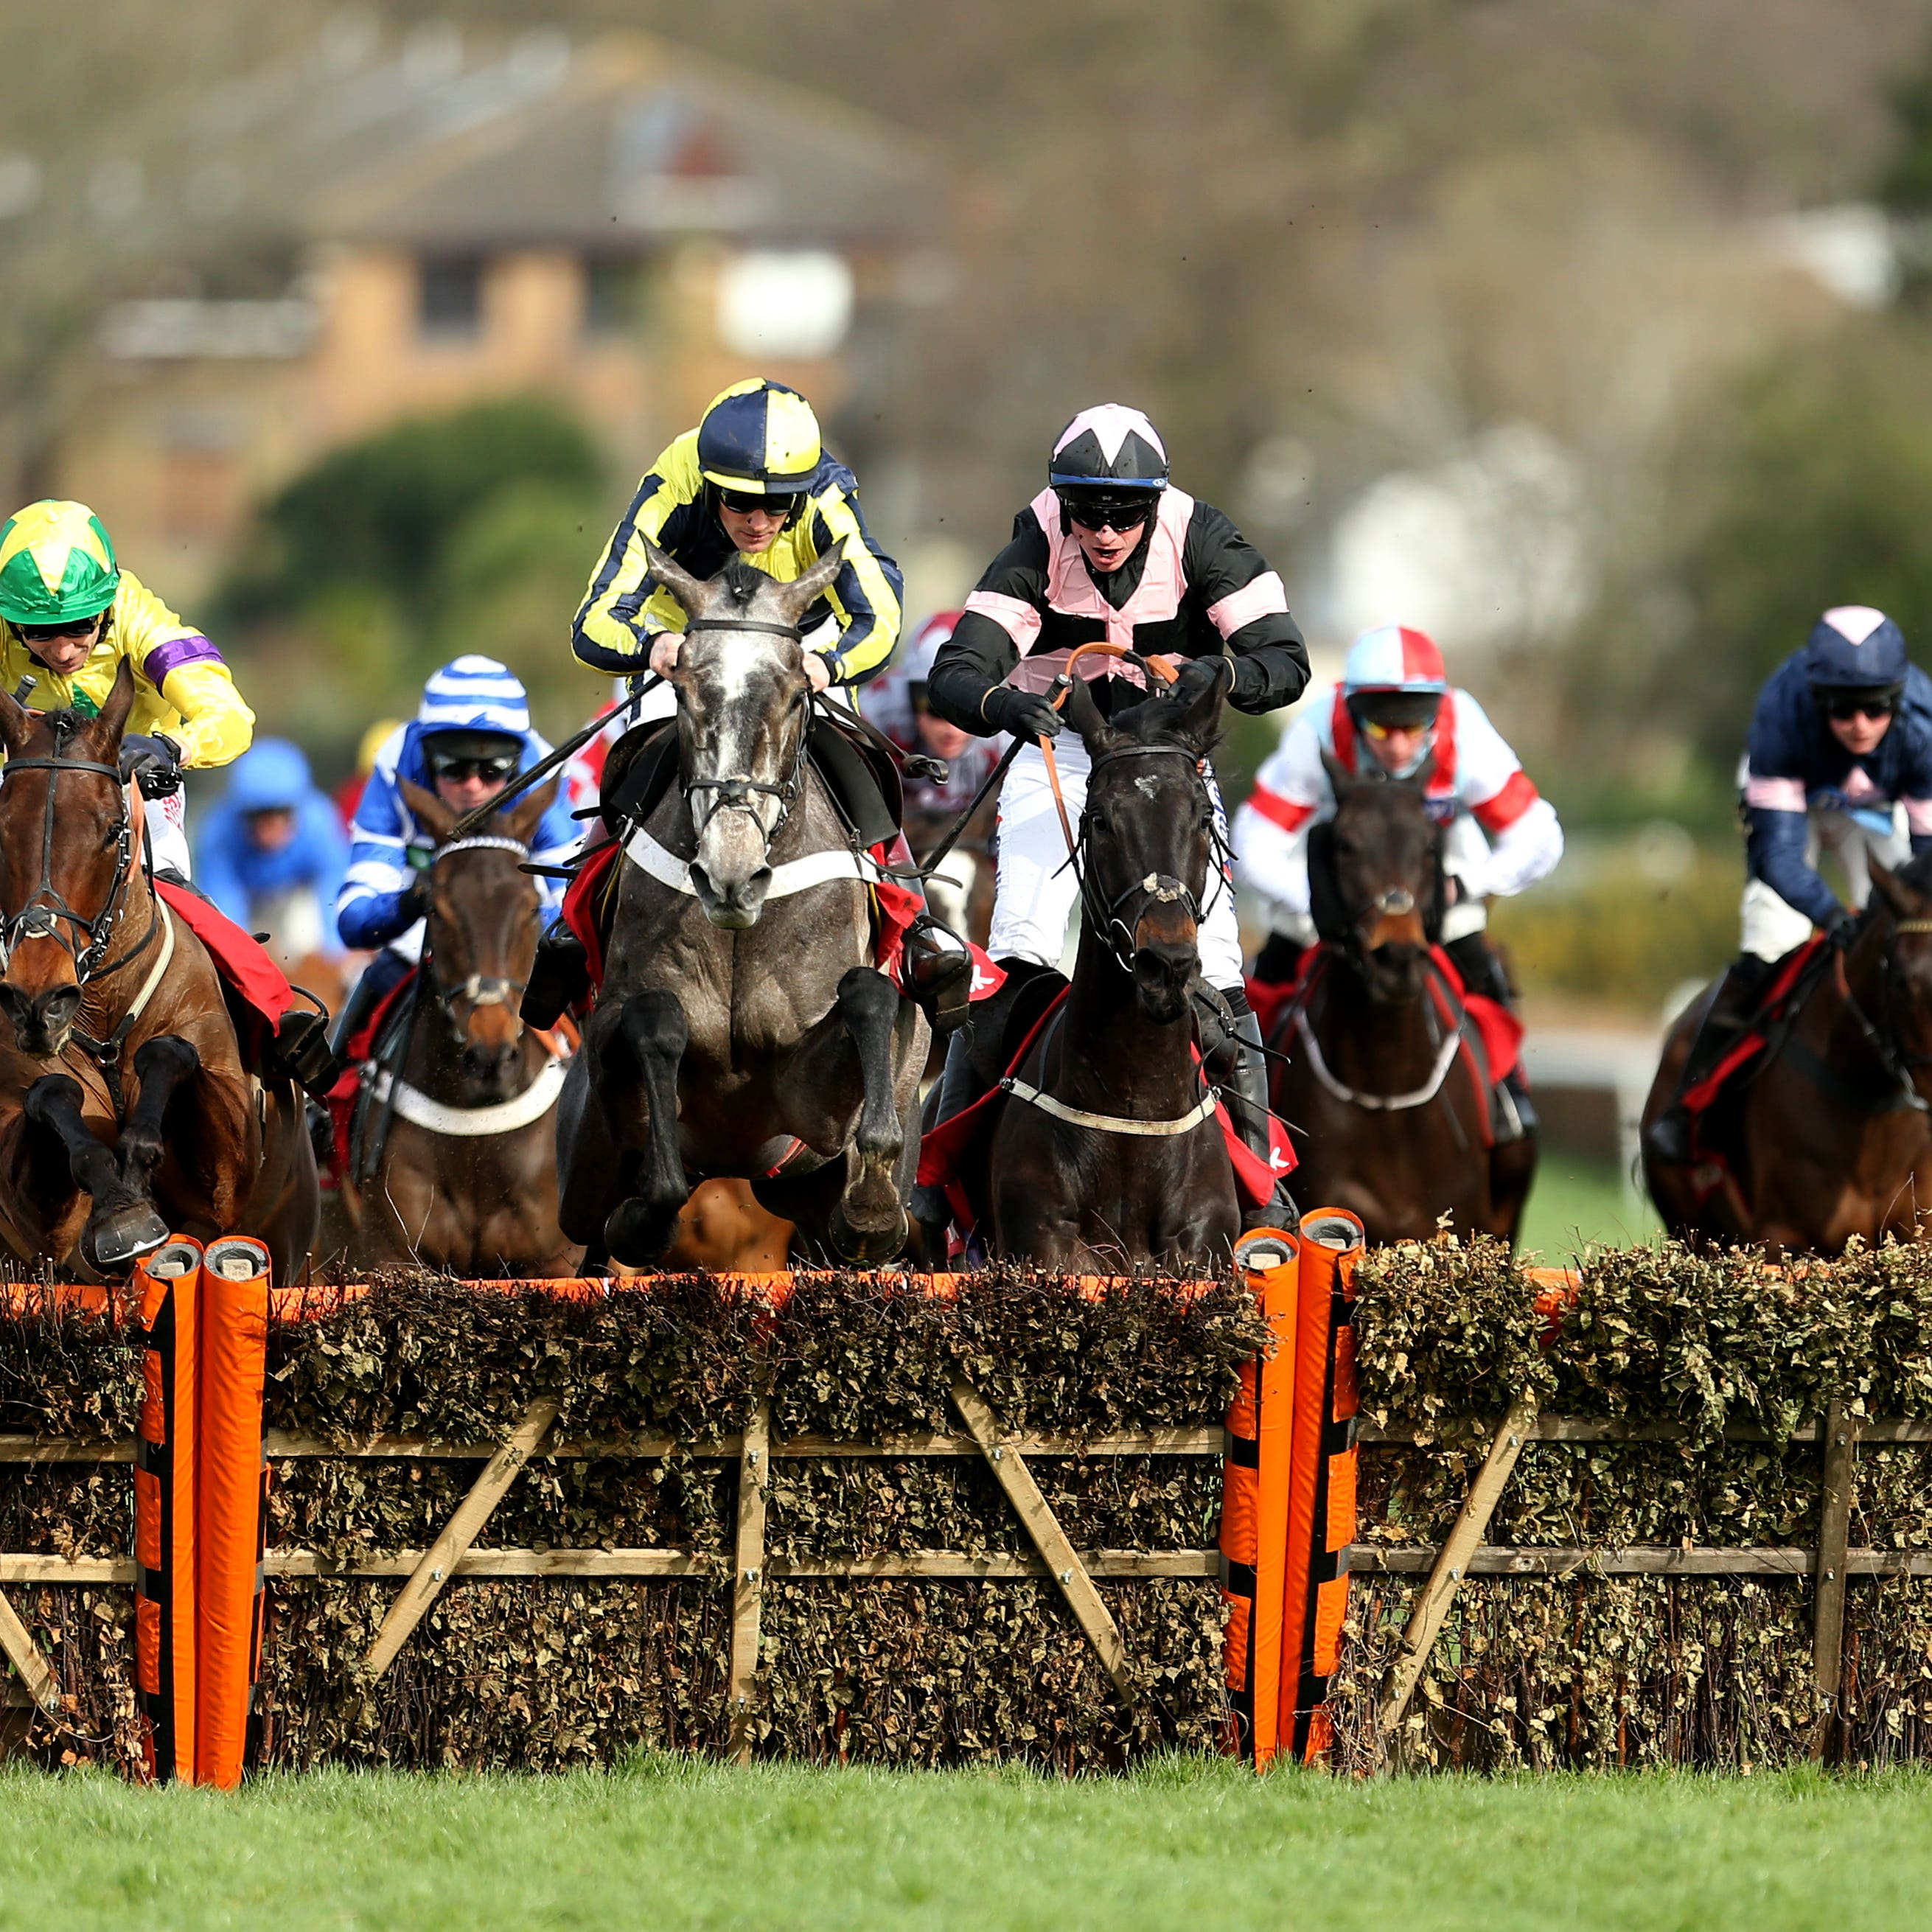 One For Rosie (yellow and blue) and Third Wind (pink and black) in action at Sandown